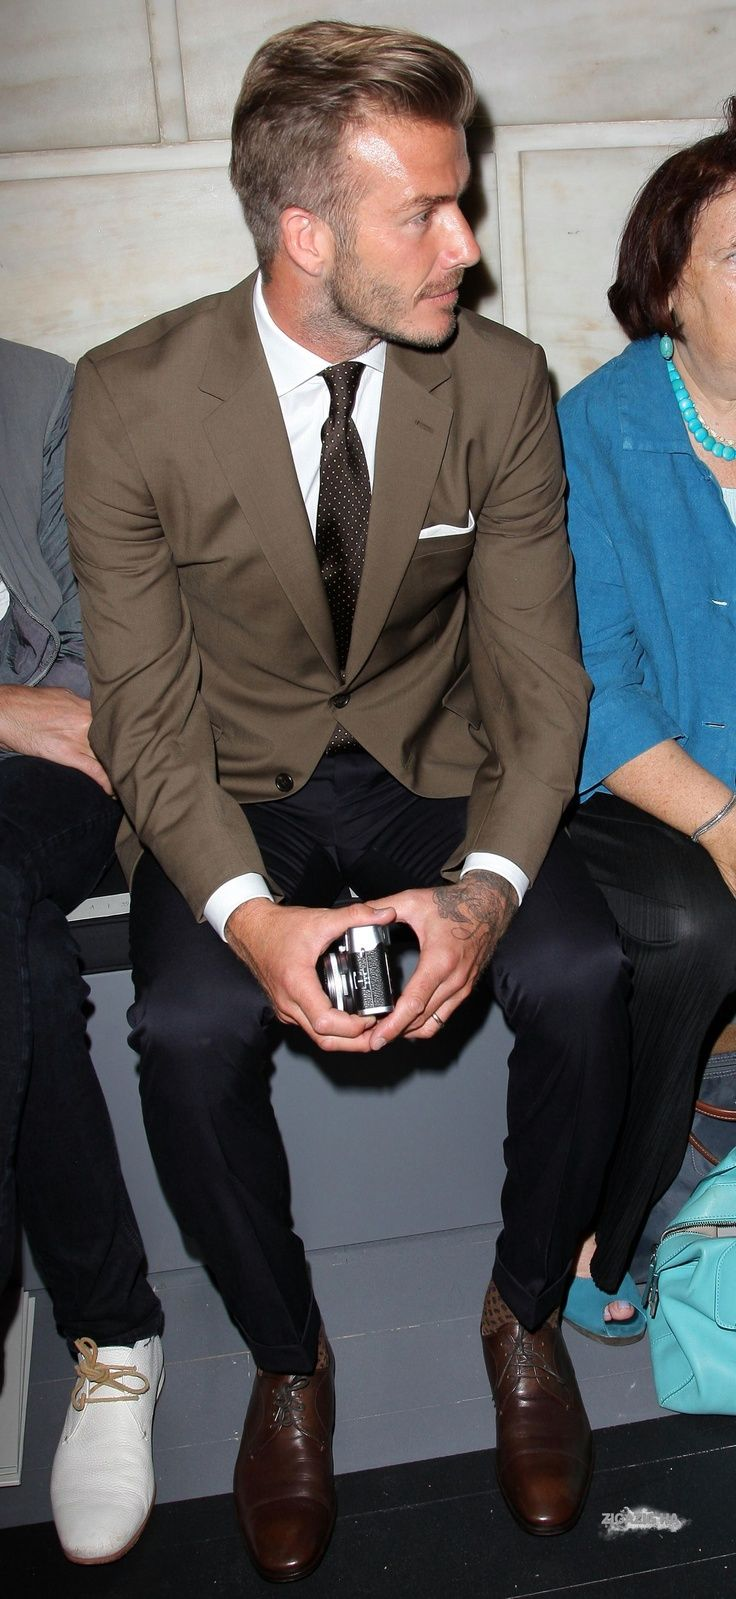 7 best images about Retro Suit Ideas on Pinterest   Tom ford, Sole ...